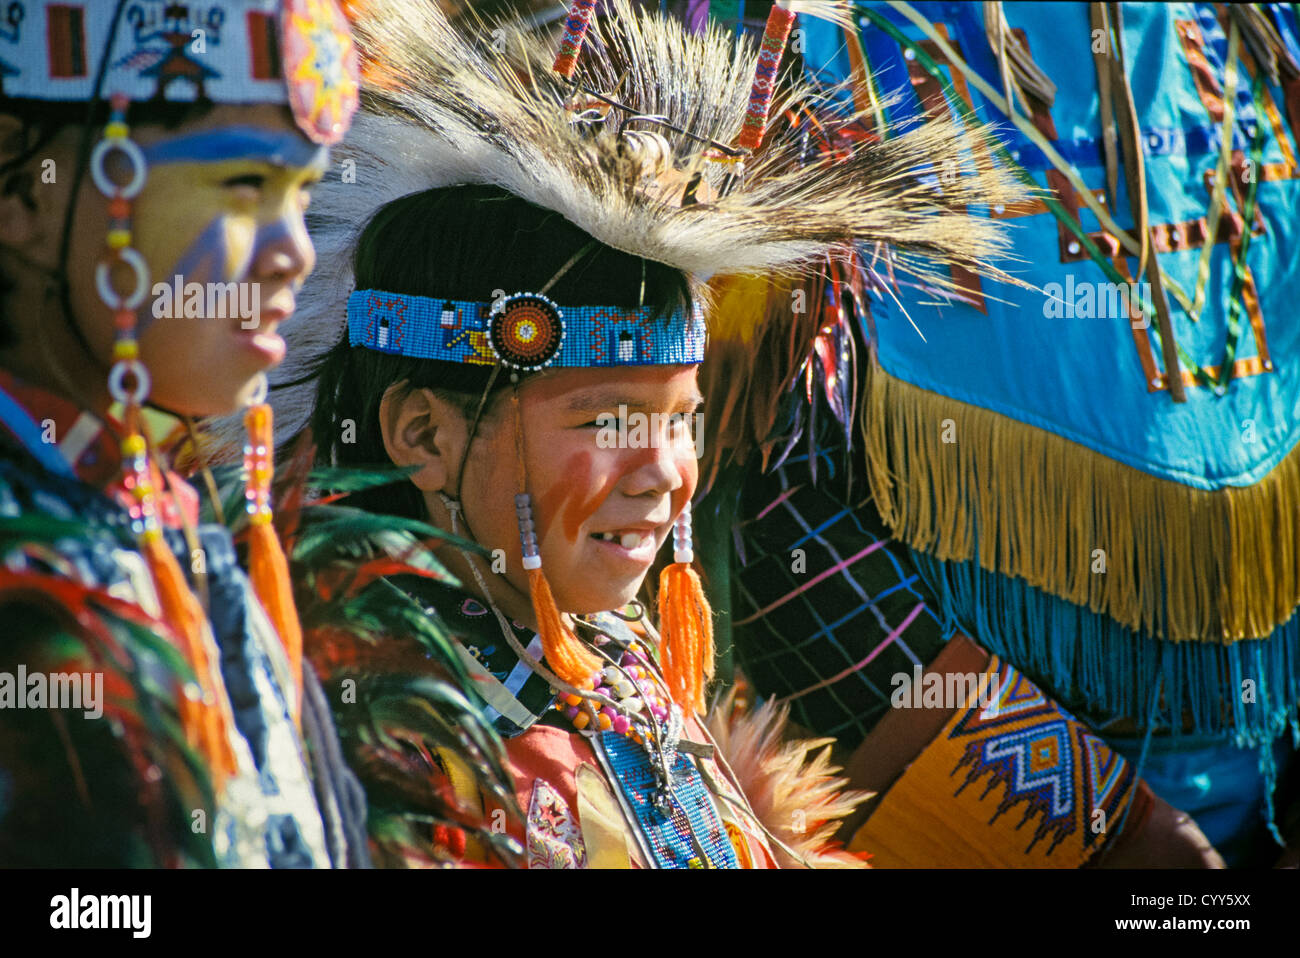 Native American boys in dance regalia at powwow. - Stock Image